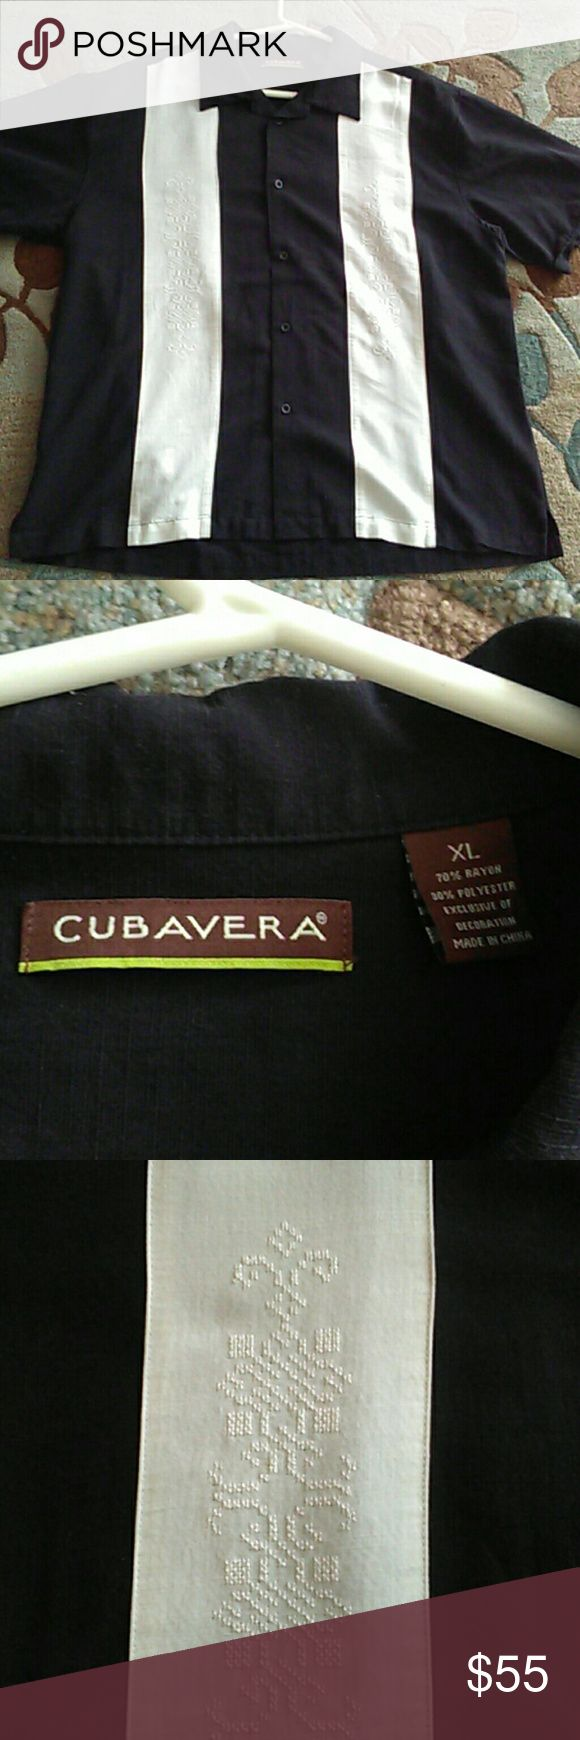 """Cubavera men's button 🔻 NWOT """"21/2 Men, """"Charlie Sheen"""" type 👕. NWOT,  NEVER TRIED ON! It was a 🎁, why tag's 📴. I wanted🔥2 it in front of my cheating, sons father who destroyed us after 18 yrs 4 a 1 🌃 er. """"For 18yrs he broke me, mentally, verbally,  physically & emotionally! But I 💭"""" NOW, IMA LET HIM GET ME FINANCIALLY """"? NOT EVEN!!  So men, men, men, men, men, men, men, men, ooo hoo, hoo, hoo. Come make a reasonable offer on this linen, shrt slv,  collared,  bowling style button 🔻…"""